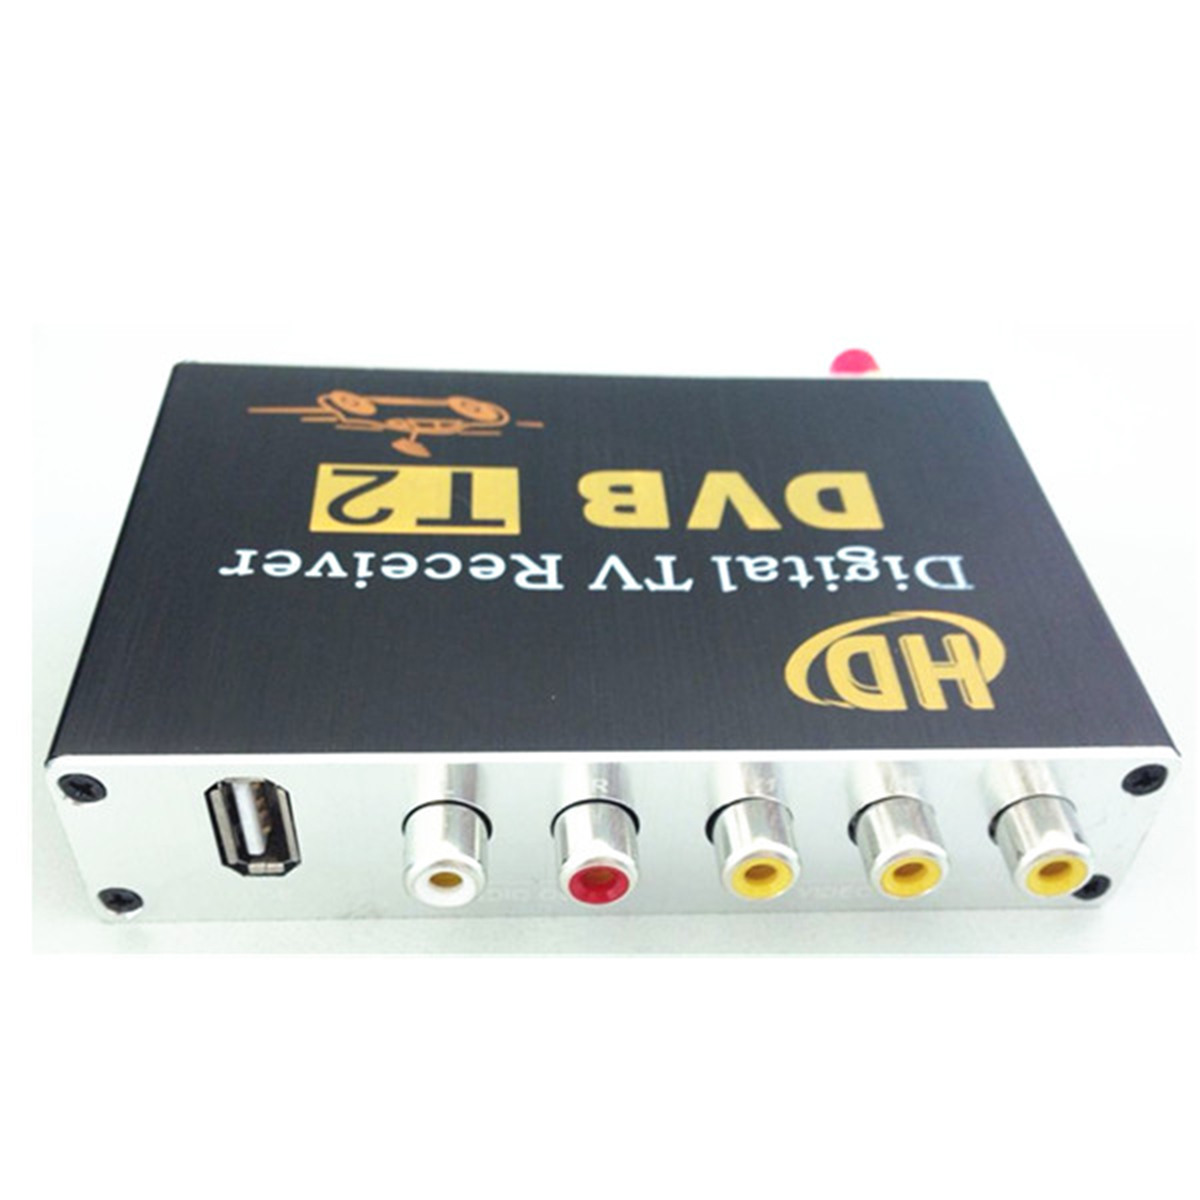 ФОТО 60KM/H 1080P Car DVB-T2 Mobile Digital TV Tuner Receiver Box for Russian Colombia (One Seg )Free Shipping